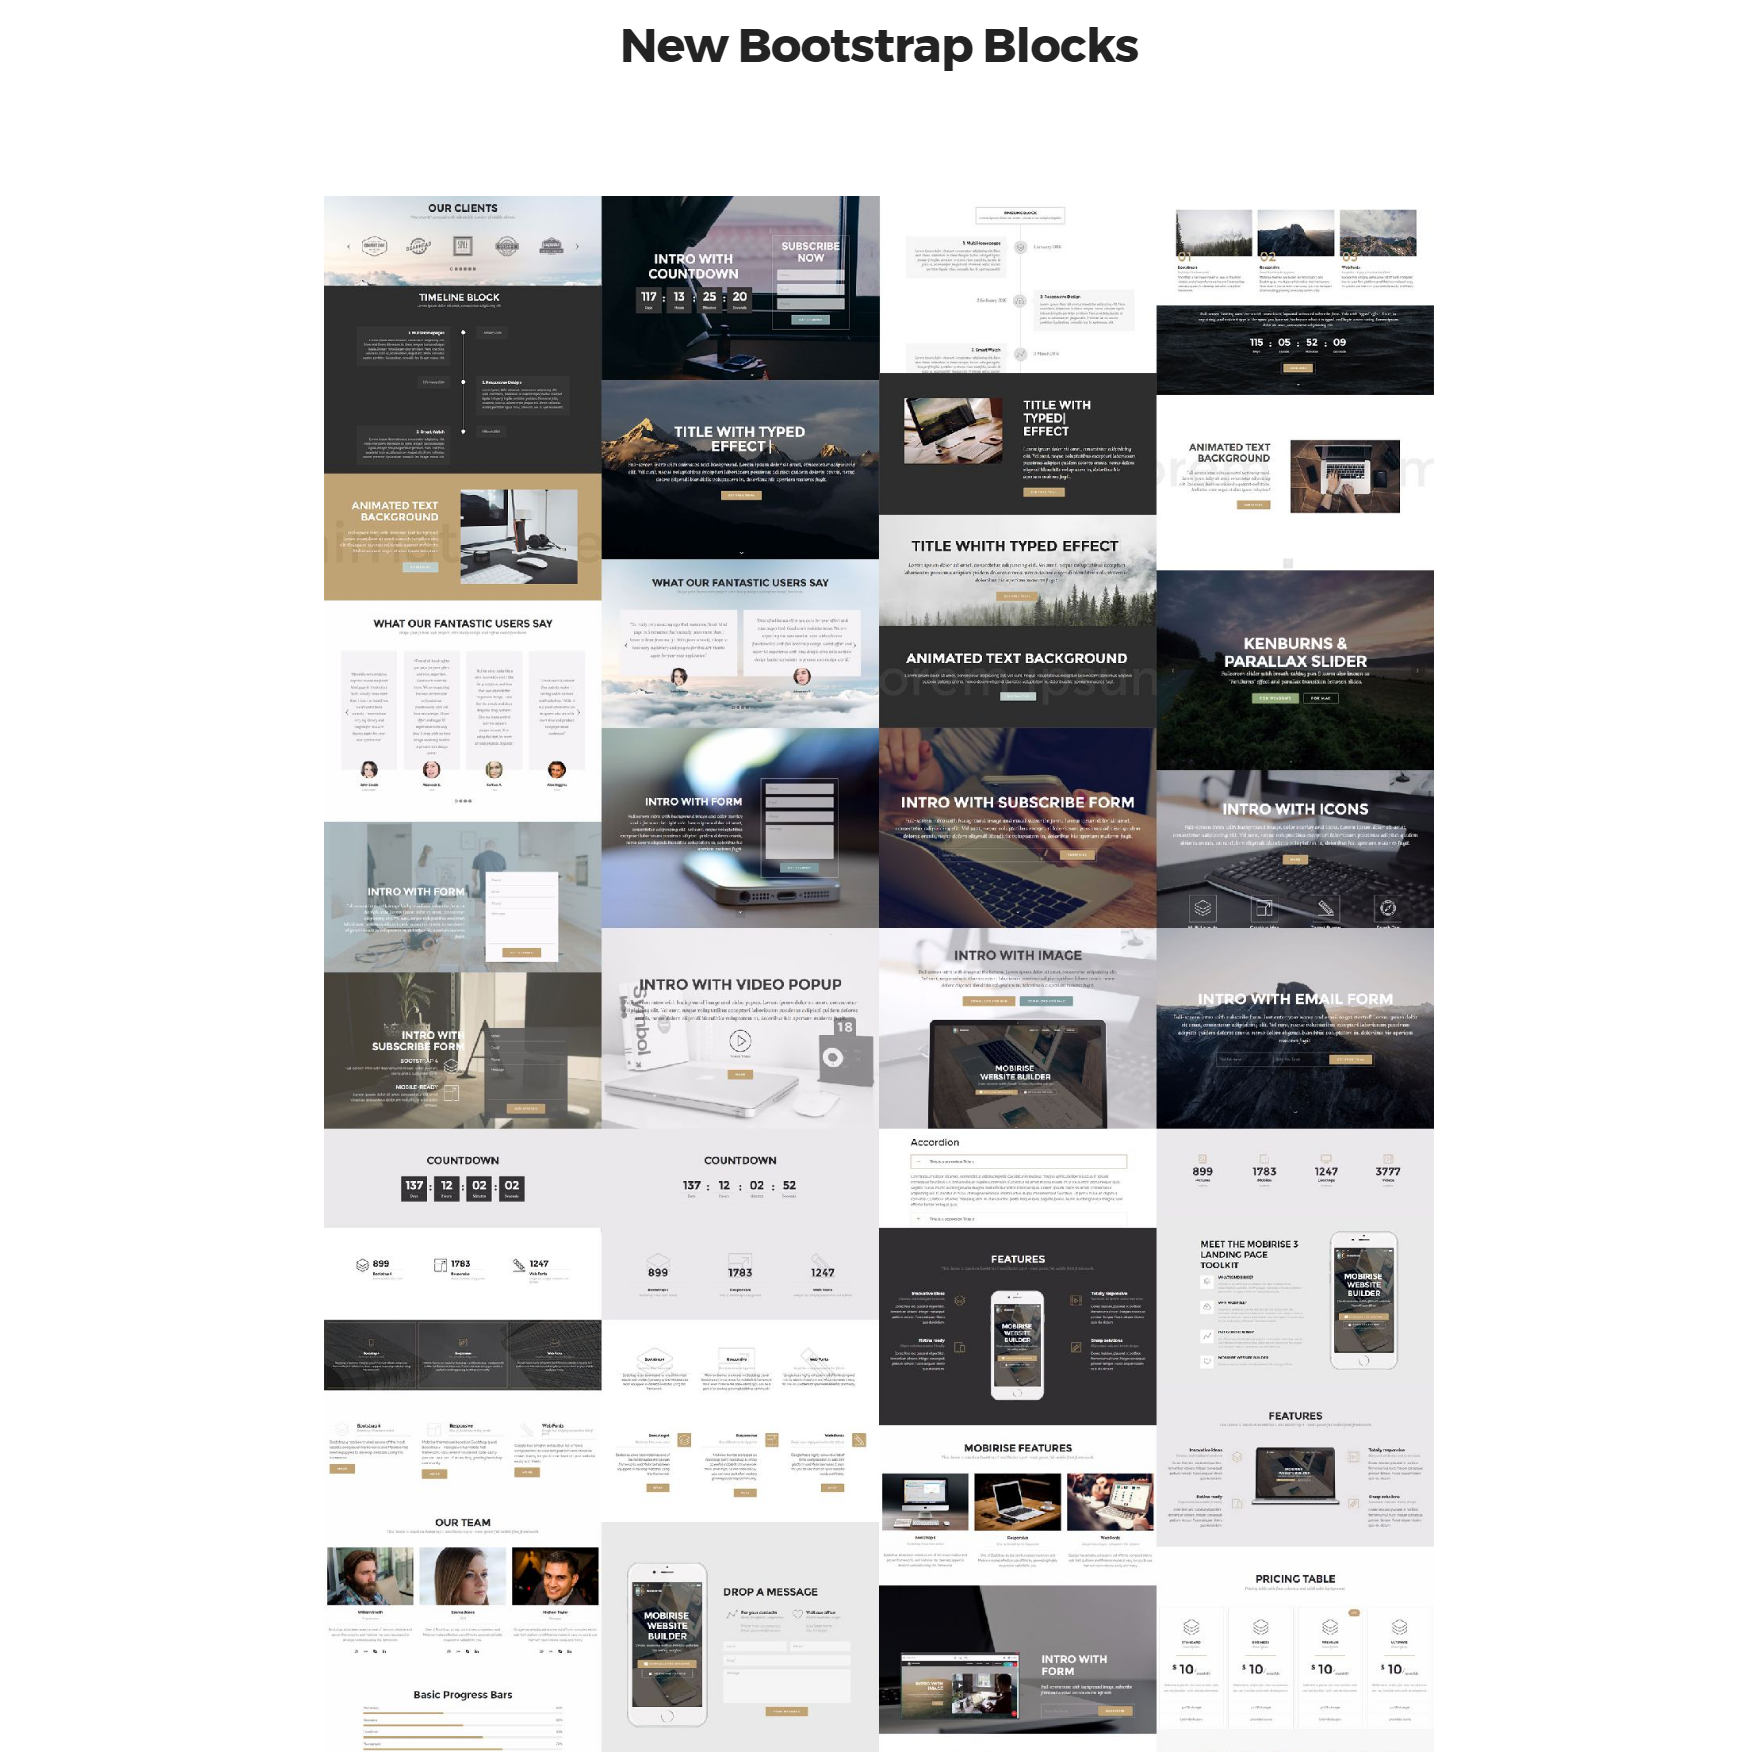 Responsive Bootstrap 4 mobile-friendly blocks Templates